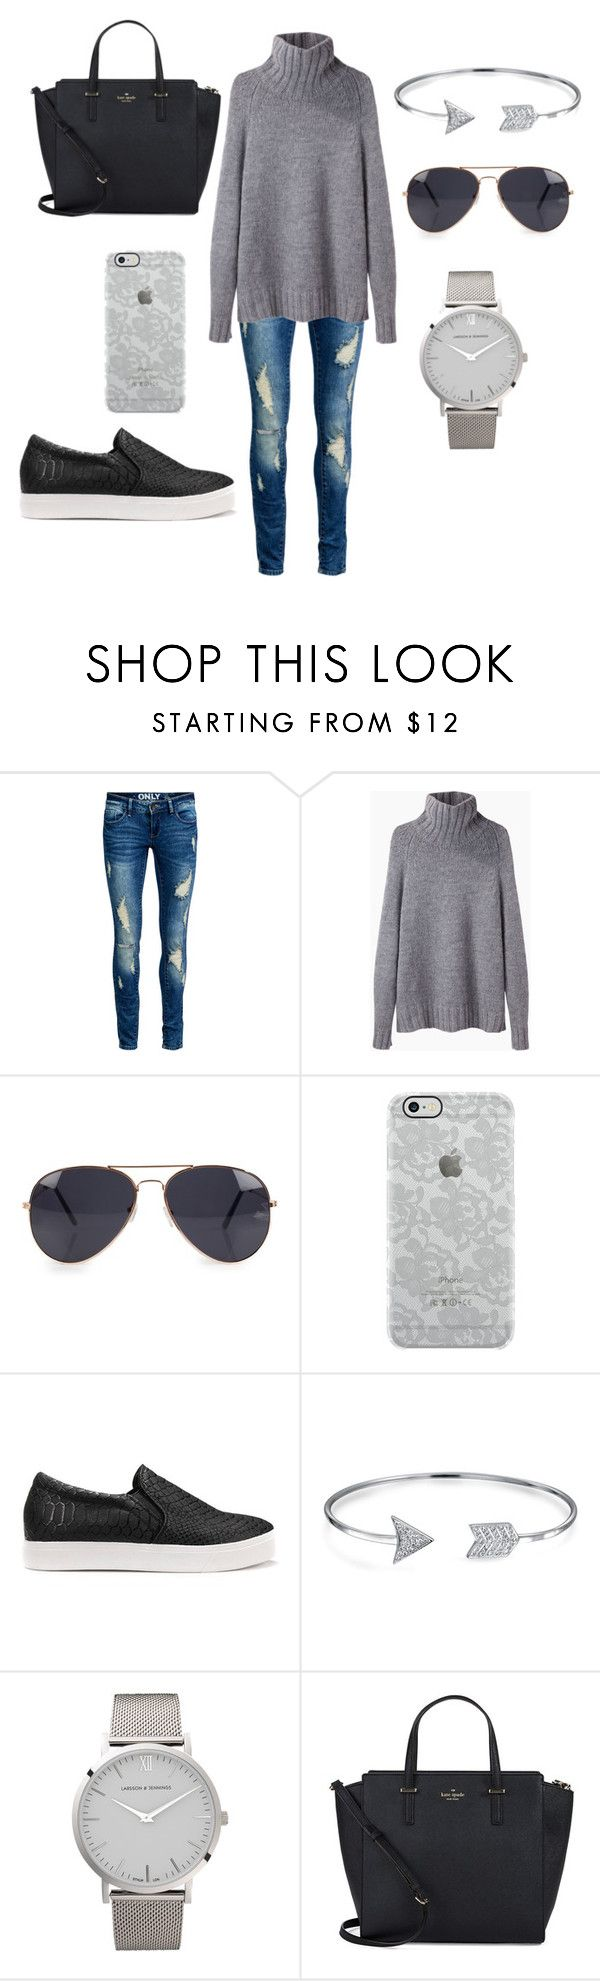 """""""Greyscale"""" by amanda-j-burke on Polyvore featuring ONLY, La Garçonne Moderne, NLY Accessories, Uncommon, Bling Jewelry, Larsson & Jennings and Kate Spade"""